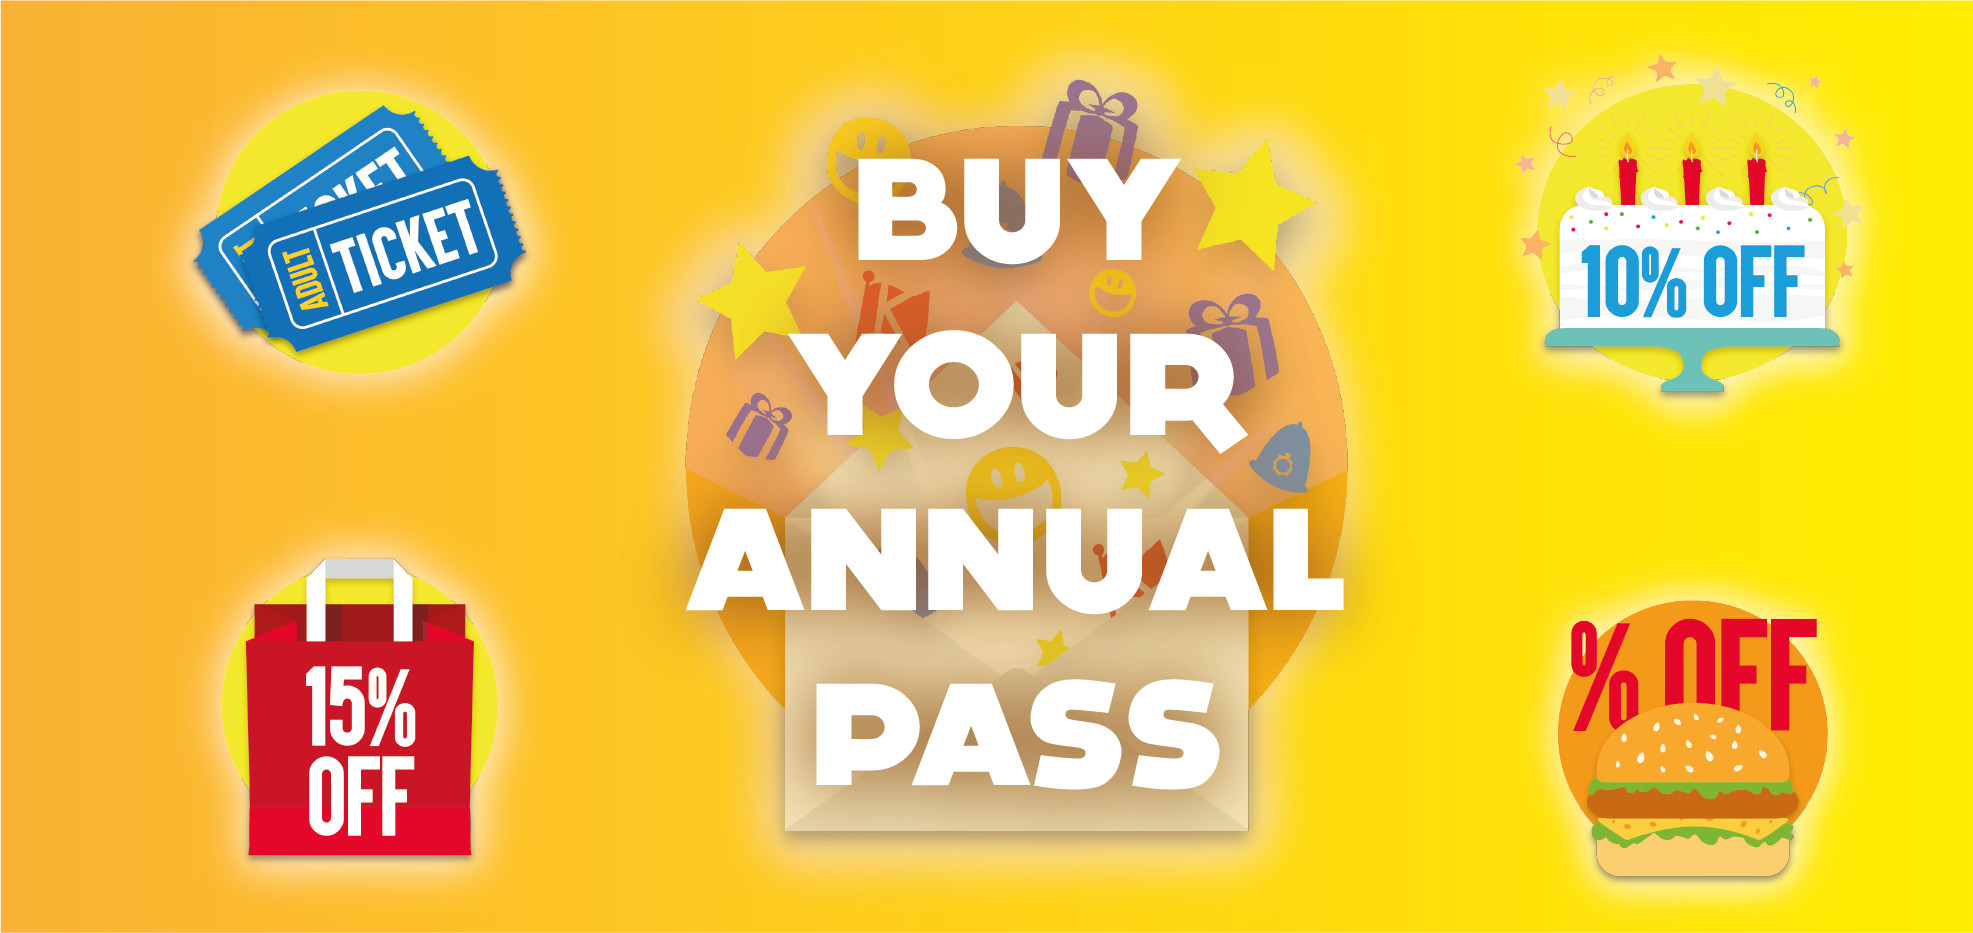 Buy Your Annual Pass